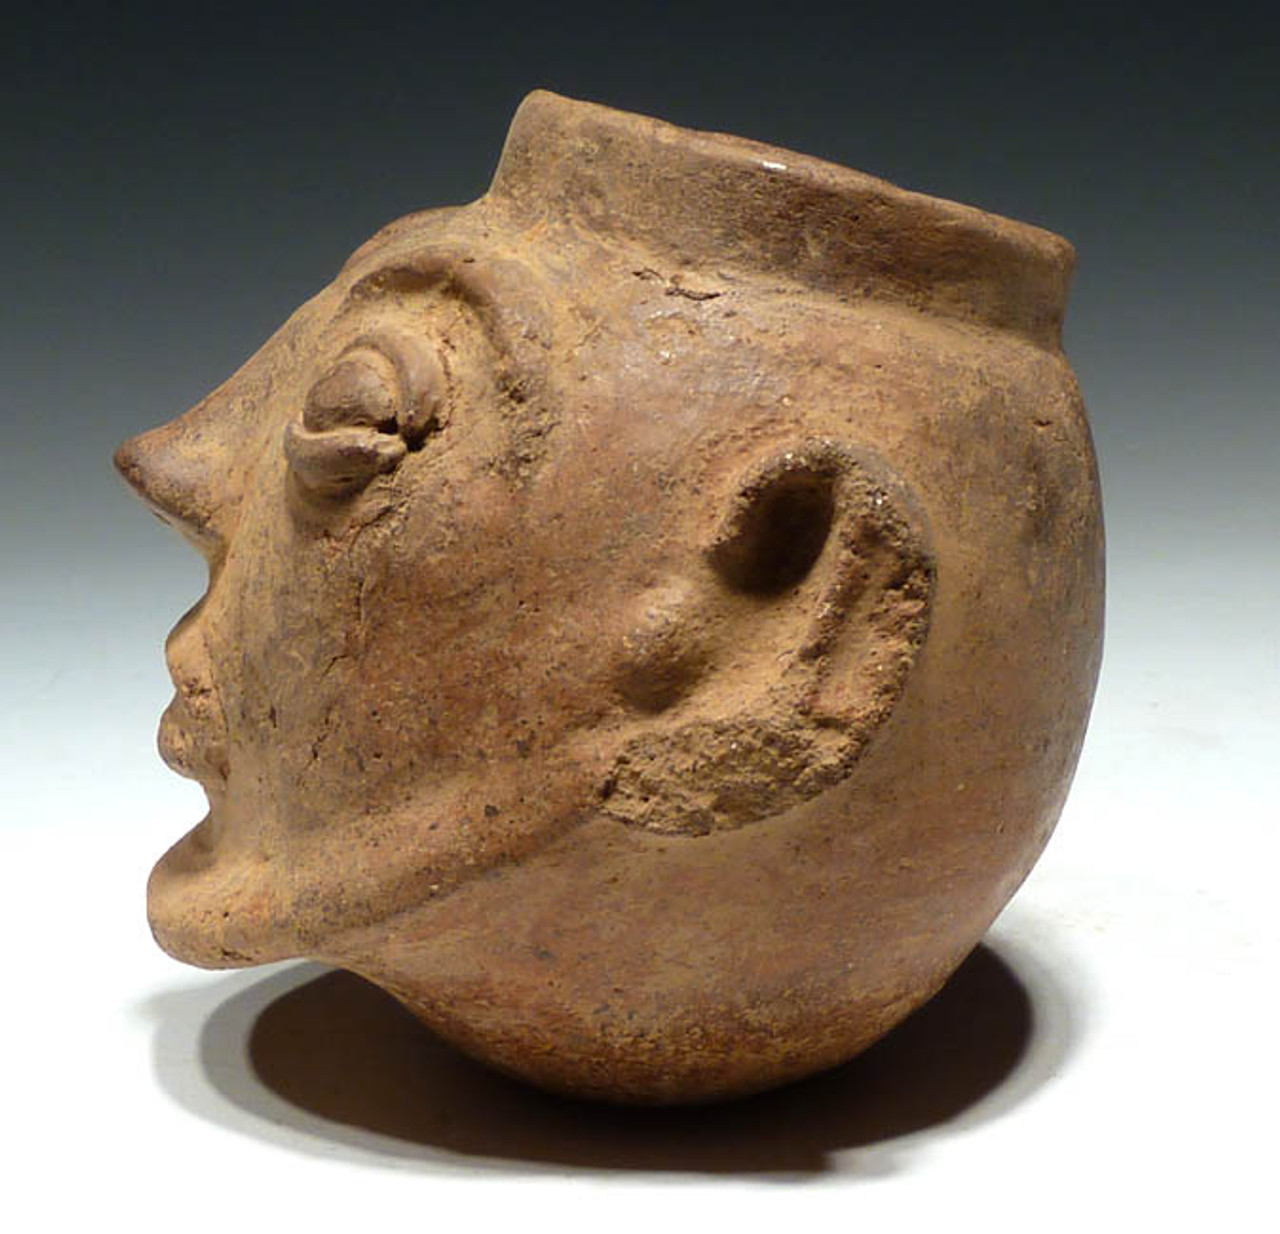 PC017 - PRE-COLUMBIAN HEAD-HUNTING TROPHY HEAD EFFIGY POT OF THE GREATER NICOYA CULTURE